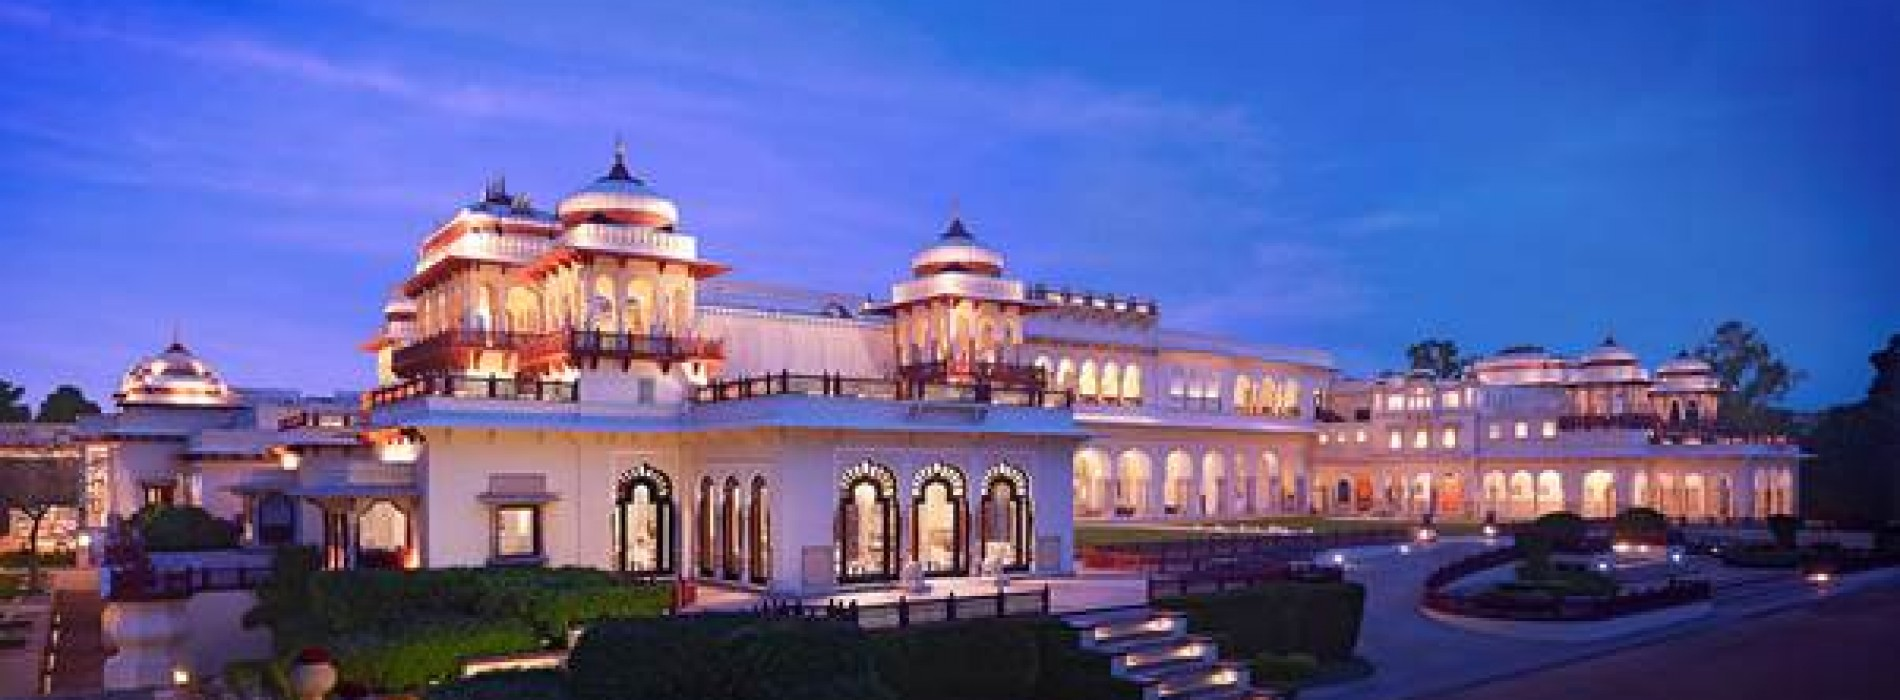 Indulge in a royal experience at the living palaces of Taj Group